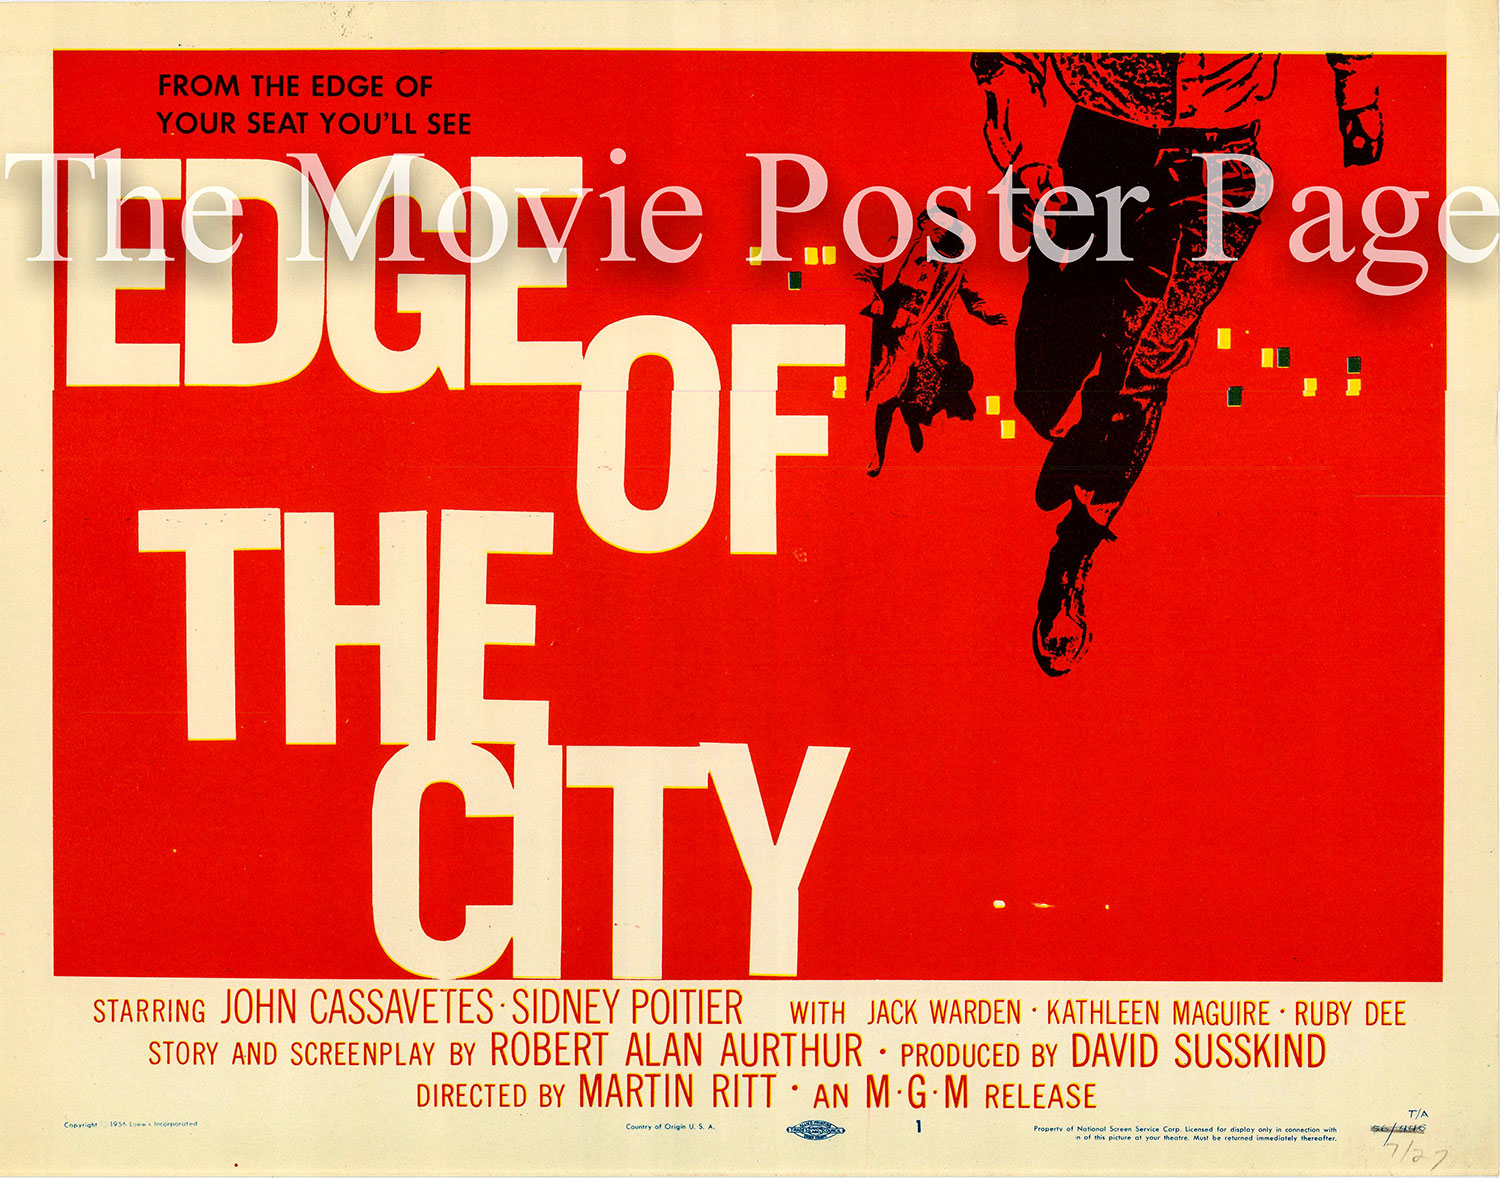 Pictured is a US title card promotional poster for the 1957 Martin Ritt film Edge of the City starring Sidney Poitier and John Cassavetes, with art by Saul Bass.